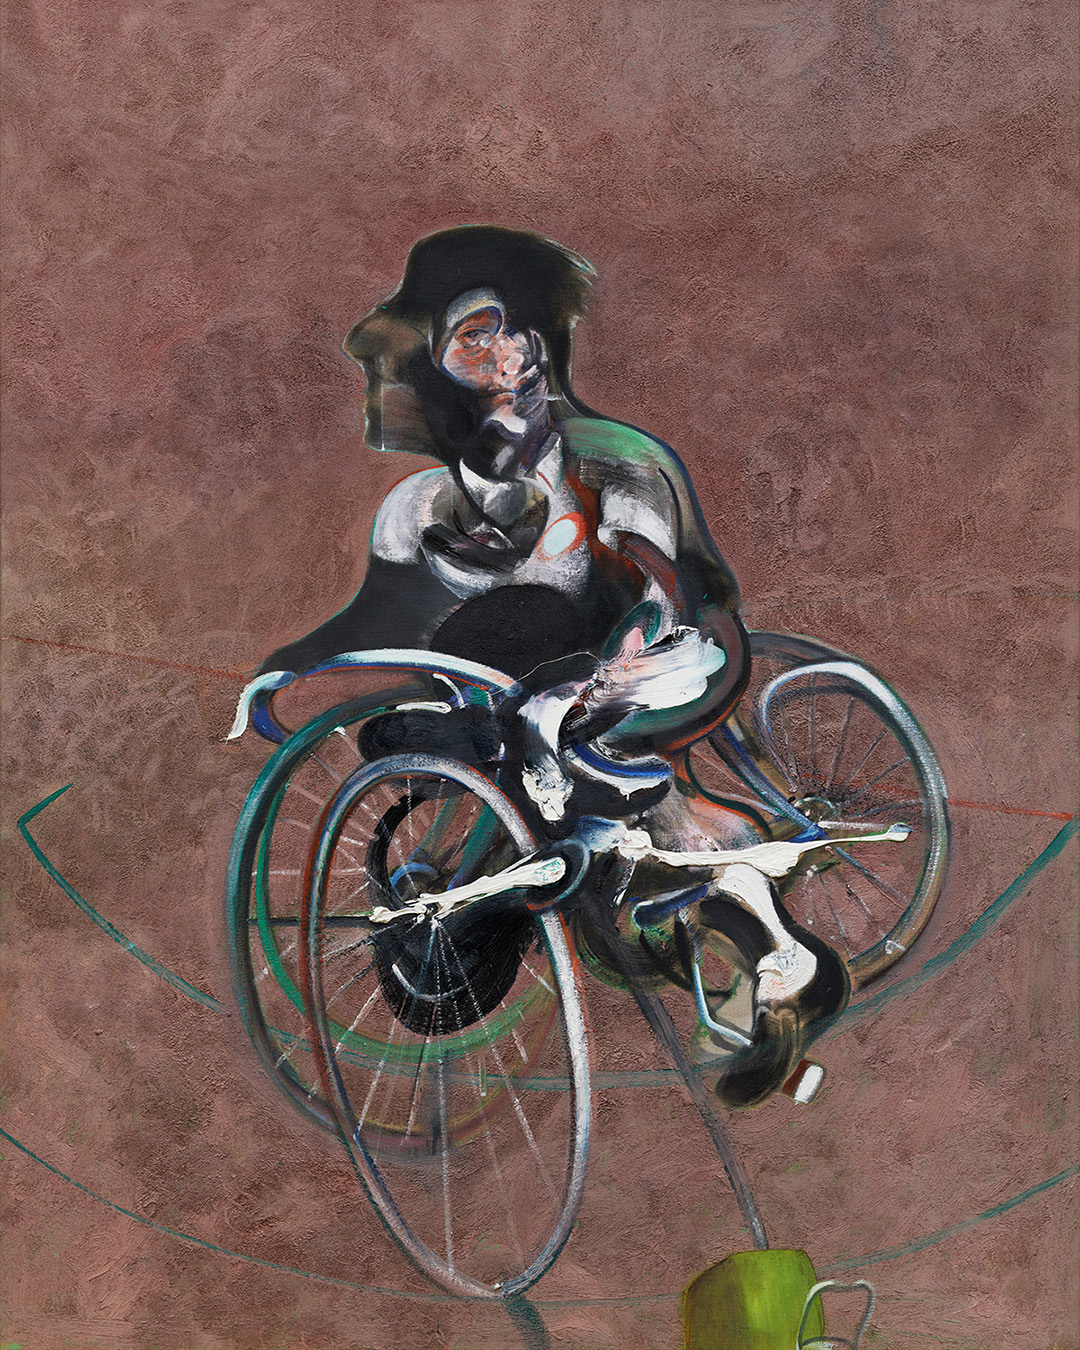 Francis Bacon, Portrait of George Dyer Riding a Bicycle, 1966. Oil and sand on canvas. CR number 66-15. © The Estate of Francis Bacon / DACS London 2019. All rights reserved.